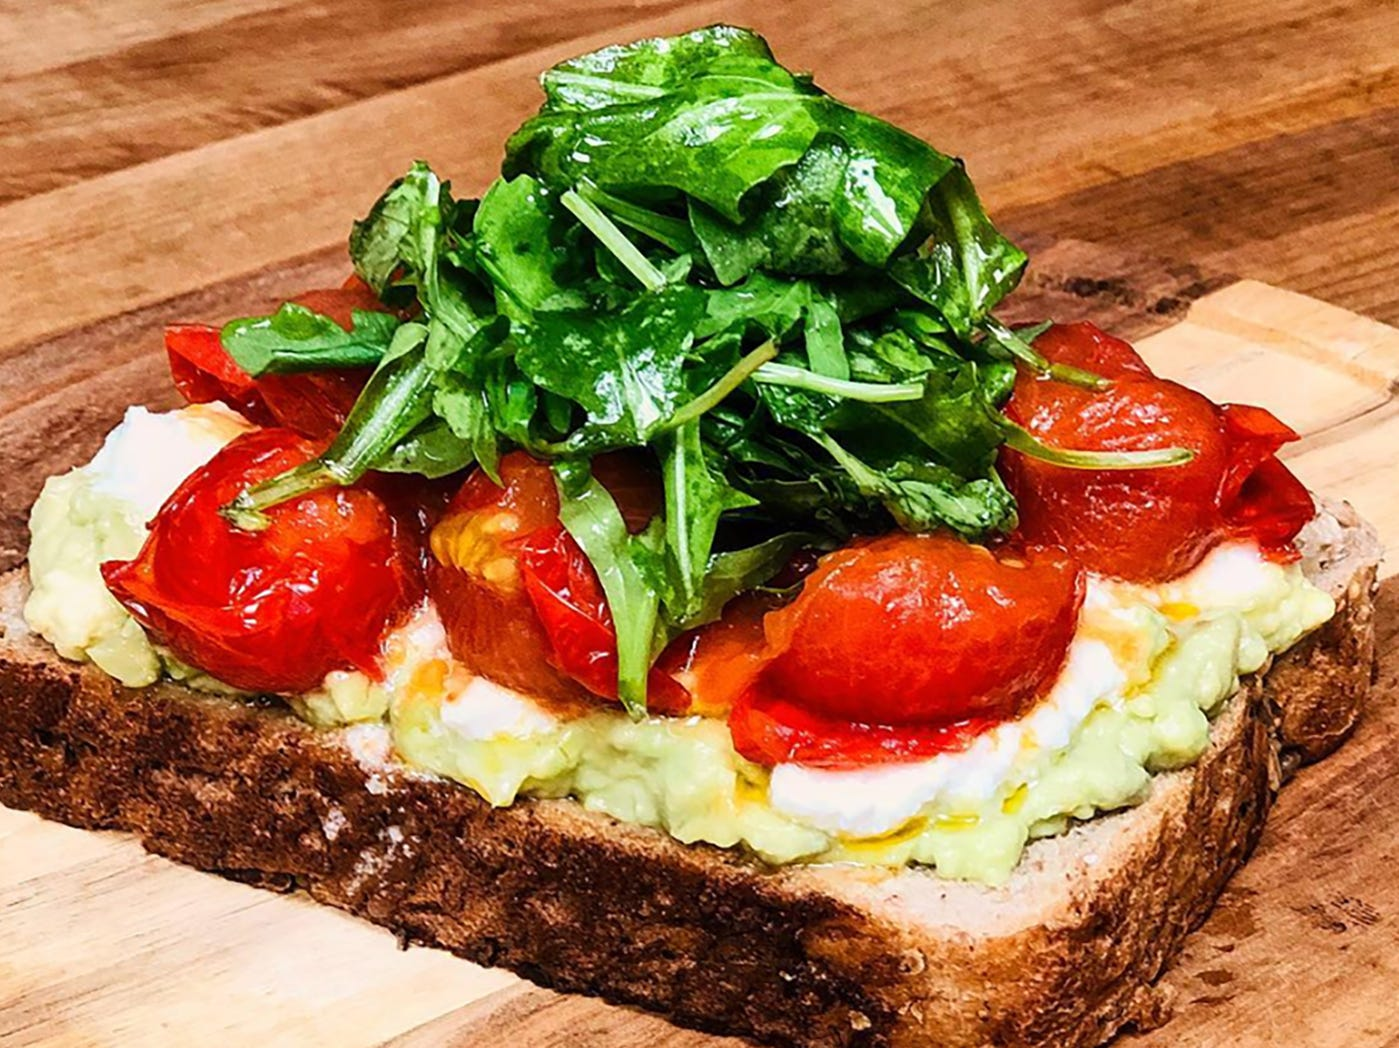 Locale Toast at the new Locale Eatery in North Naples features smashed avocado, roasted cherry tomatoes and ricotta cheese topped with arugula salad.